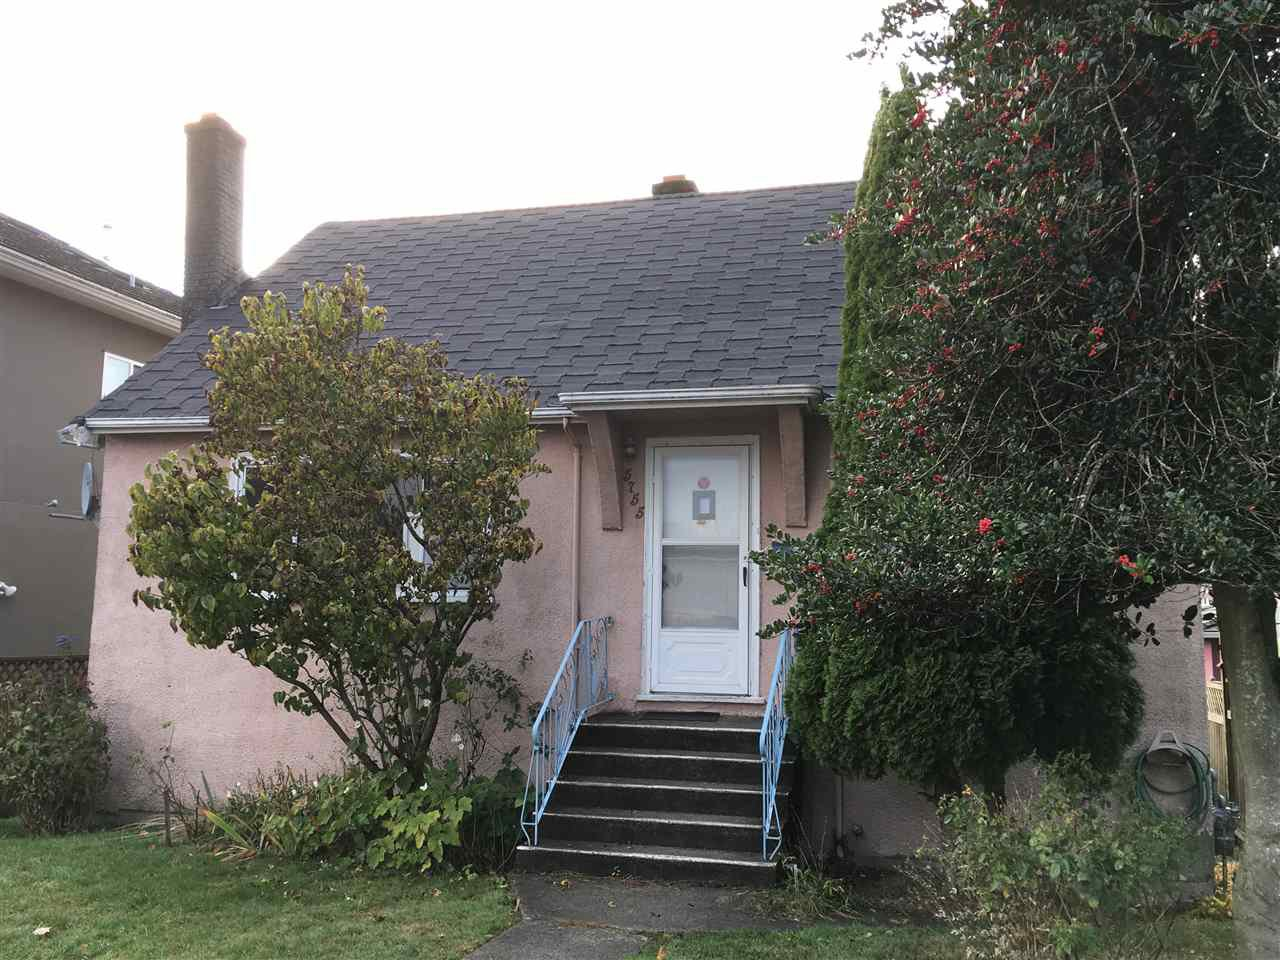 Main Photo: 5755 CLARENDON Street in Vancouver: Killarney VE House for sale (Vancouver East)  : MLS®# R2228966